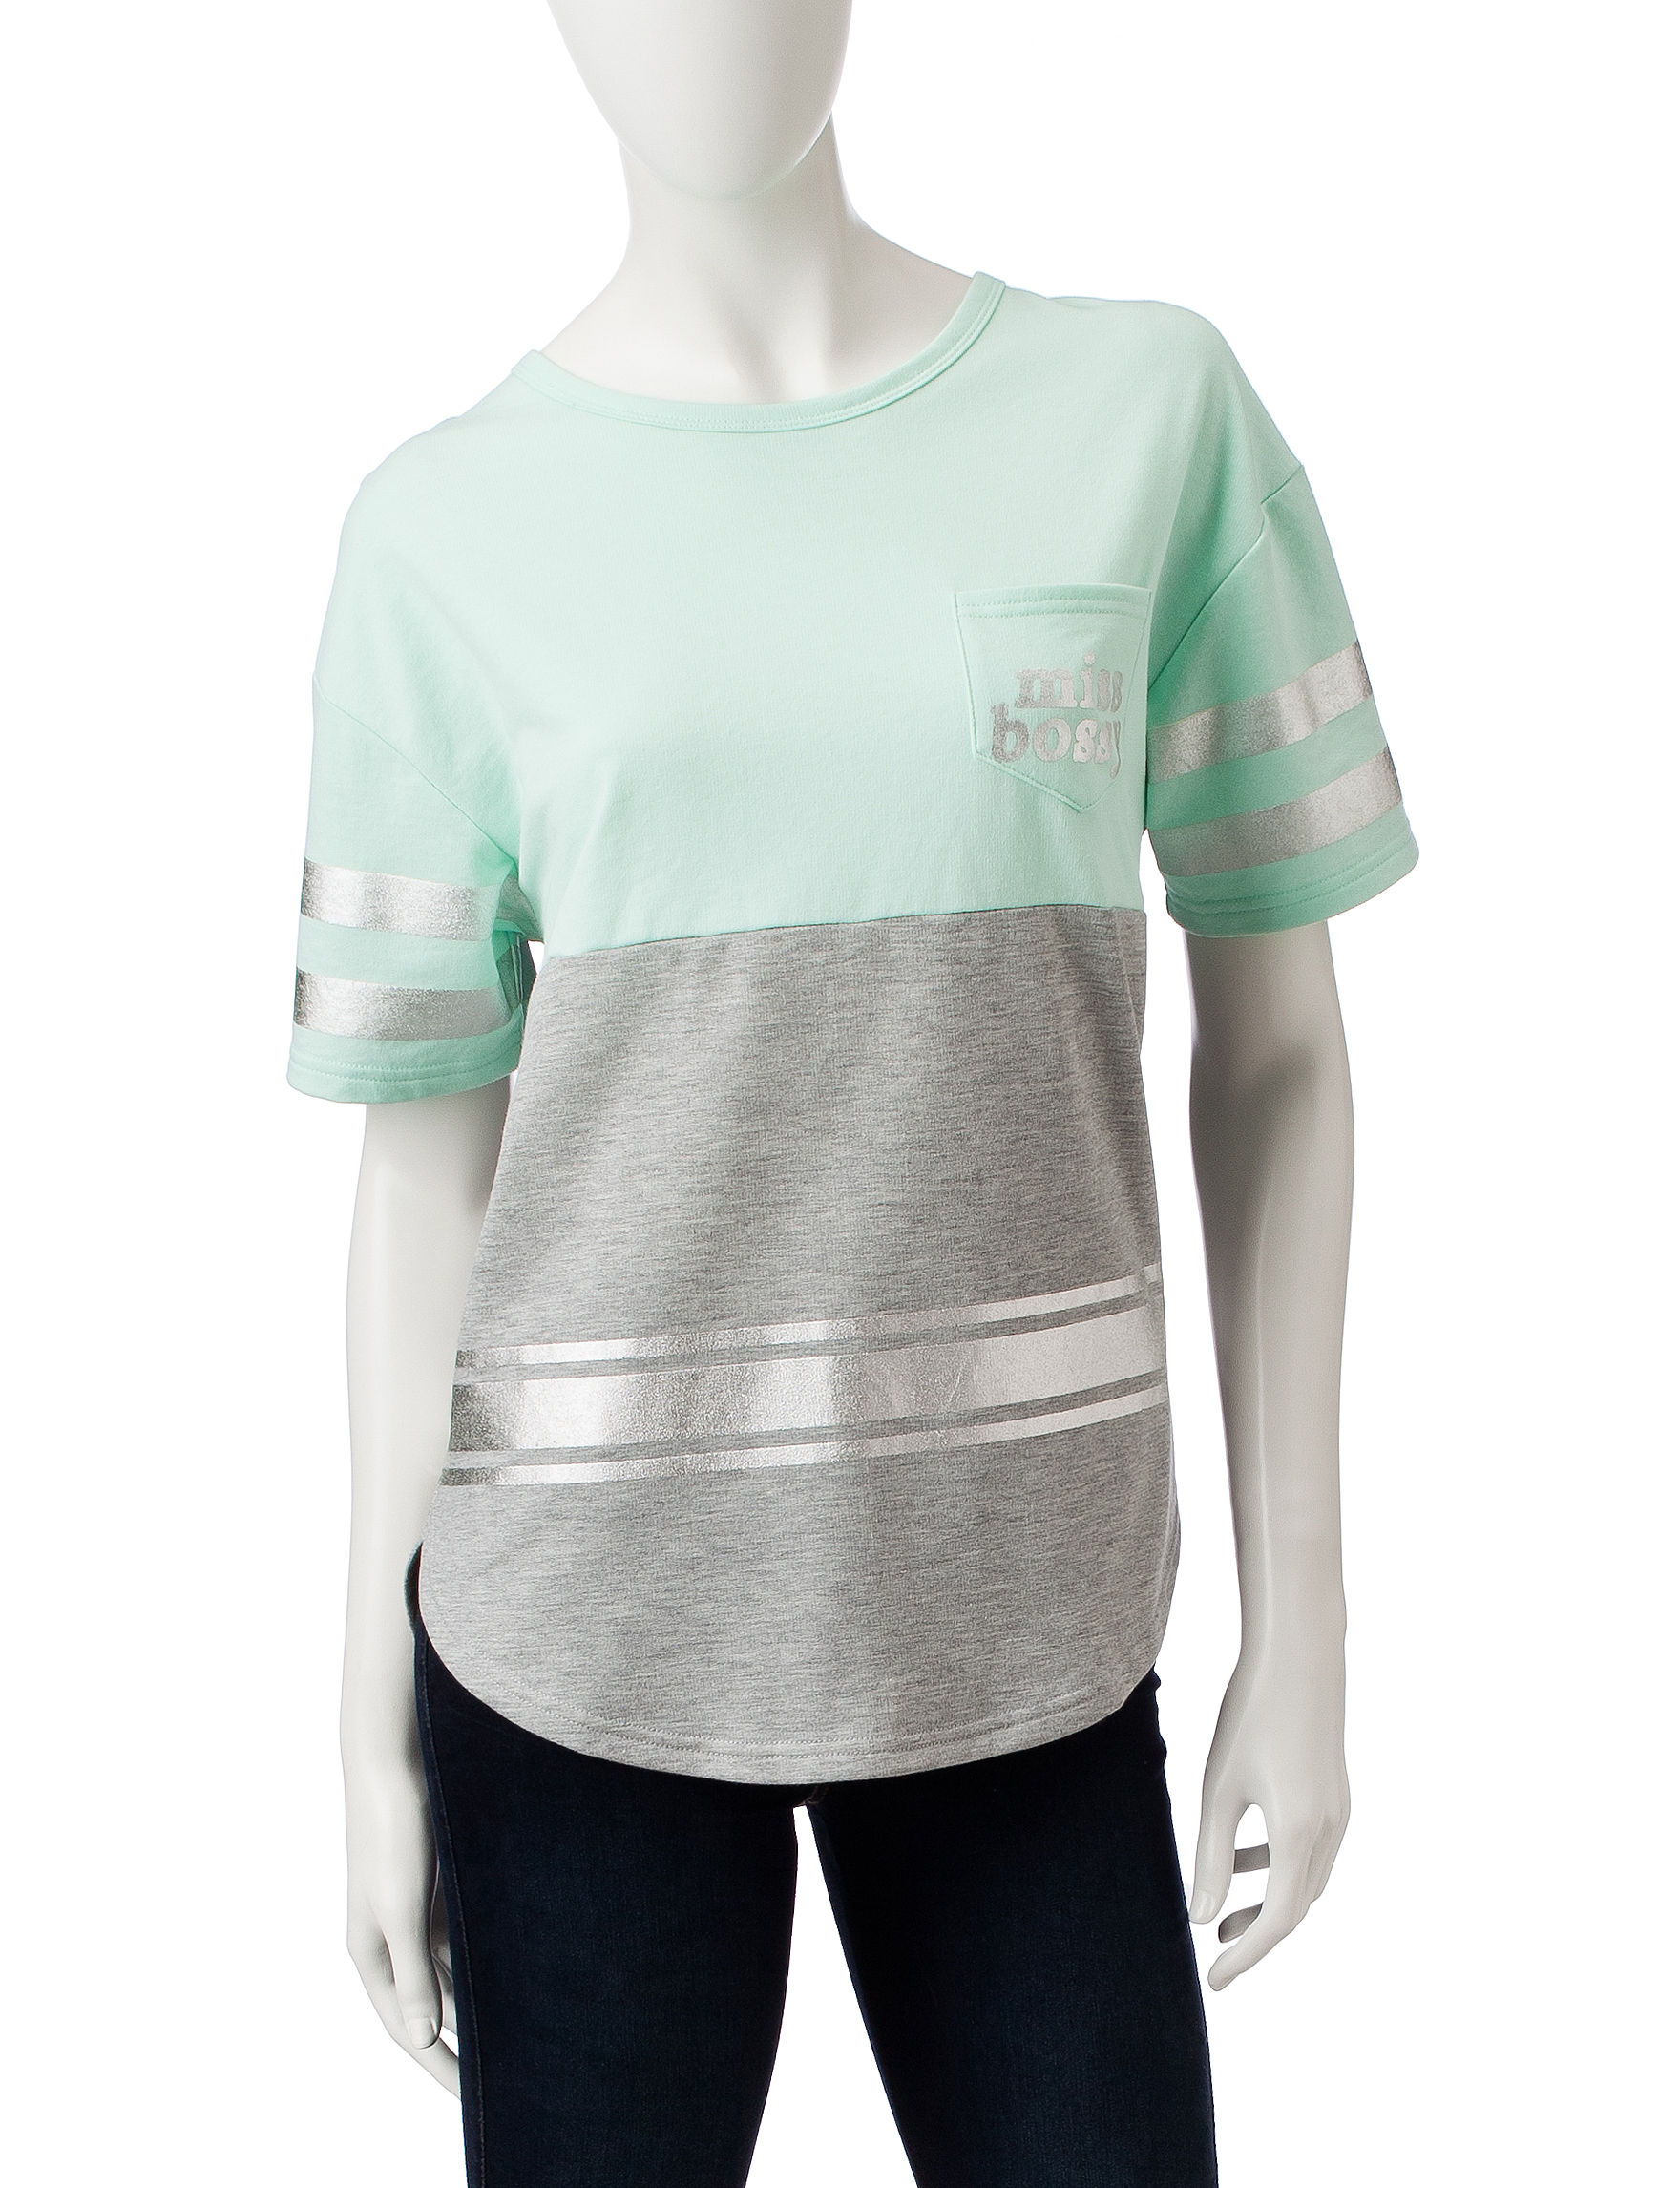 Justify Mint / Grey Shirts & Blouses